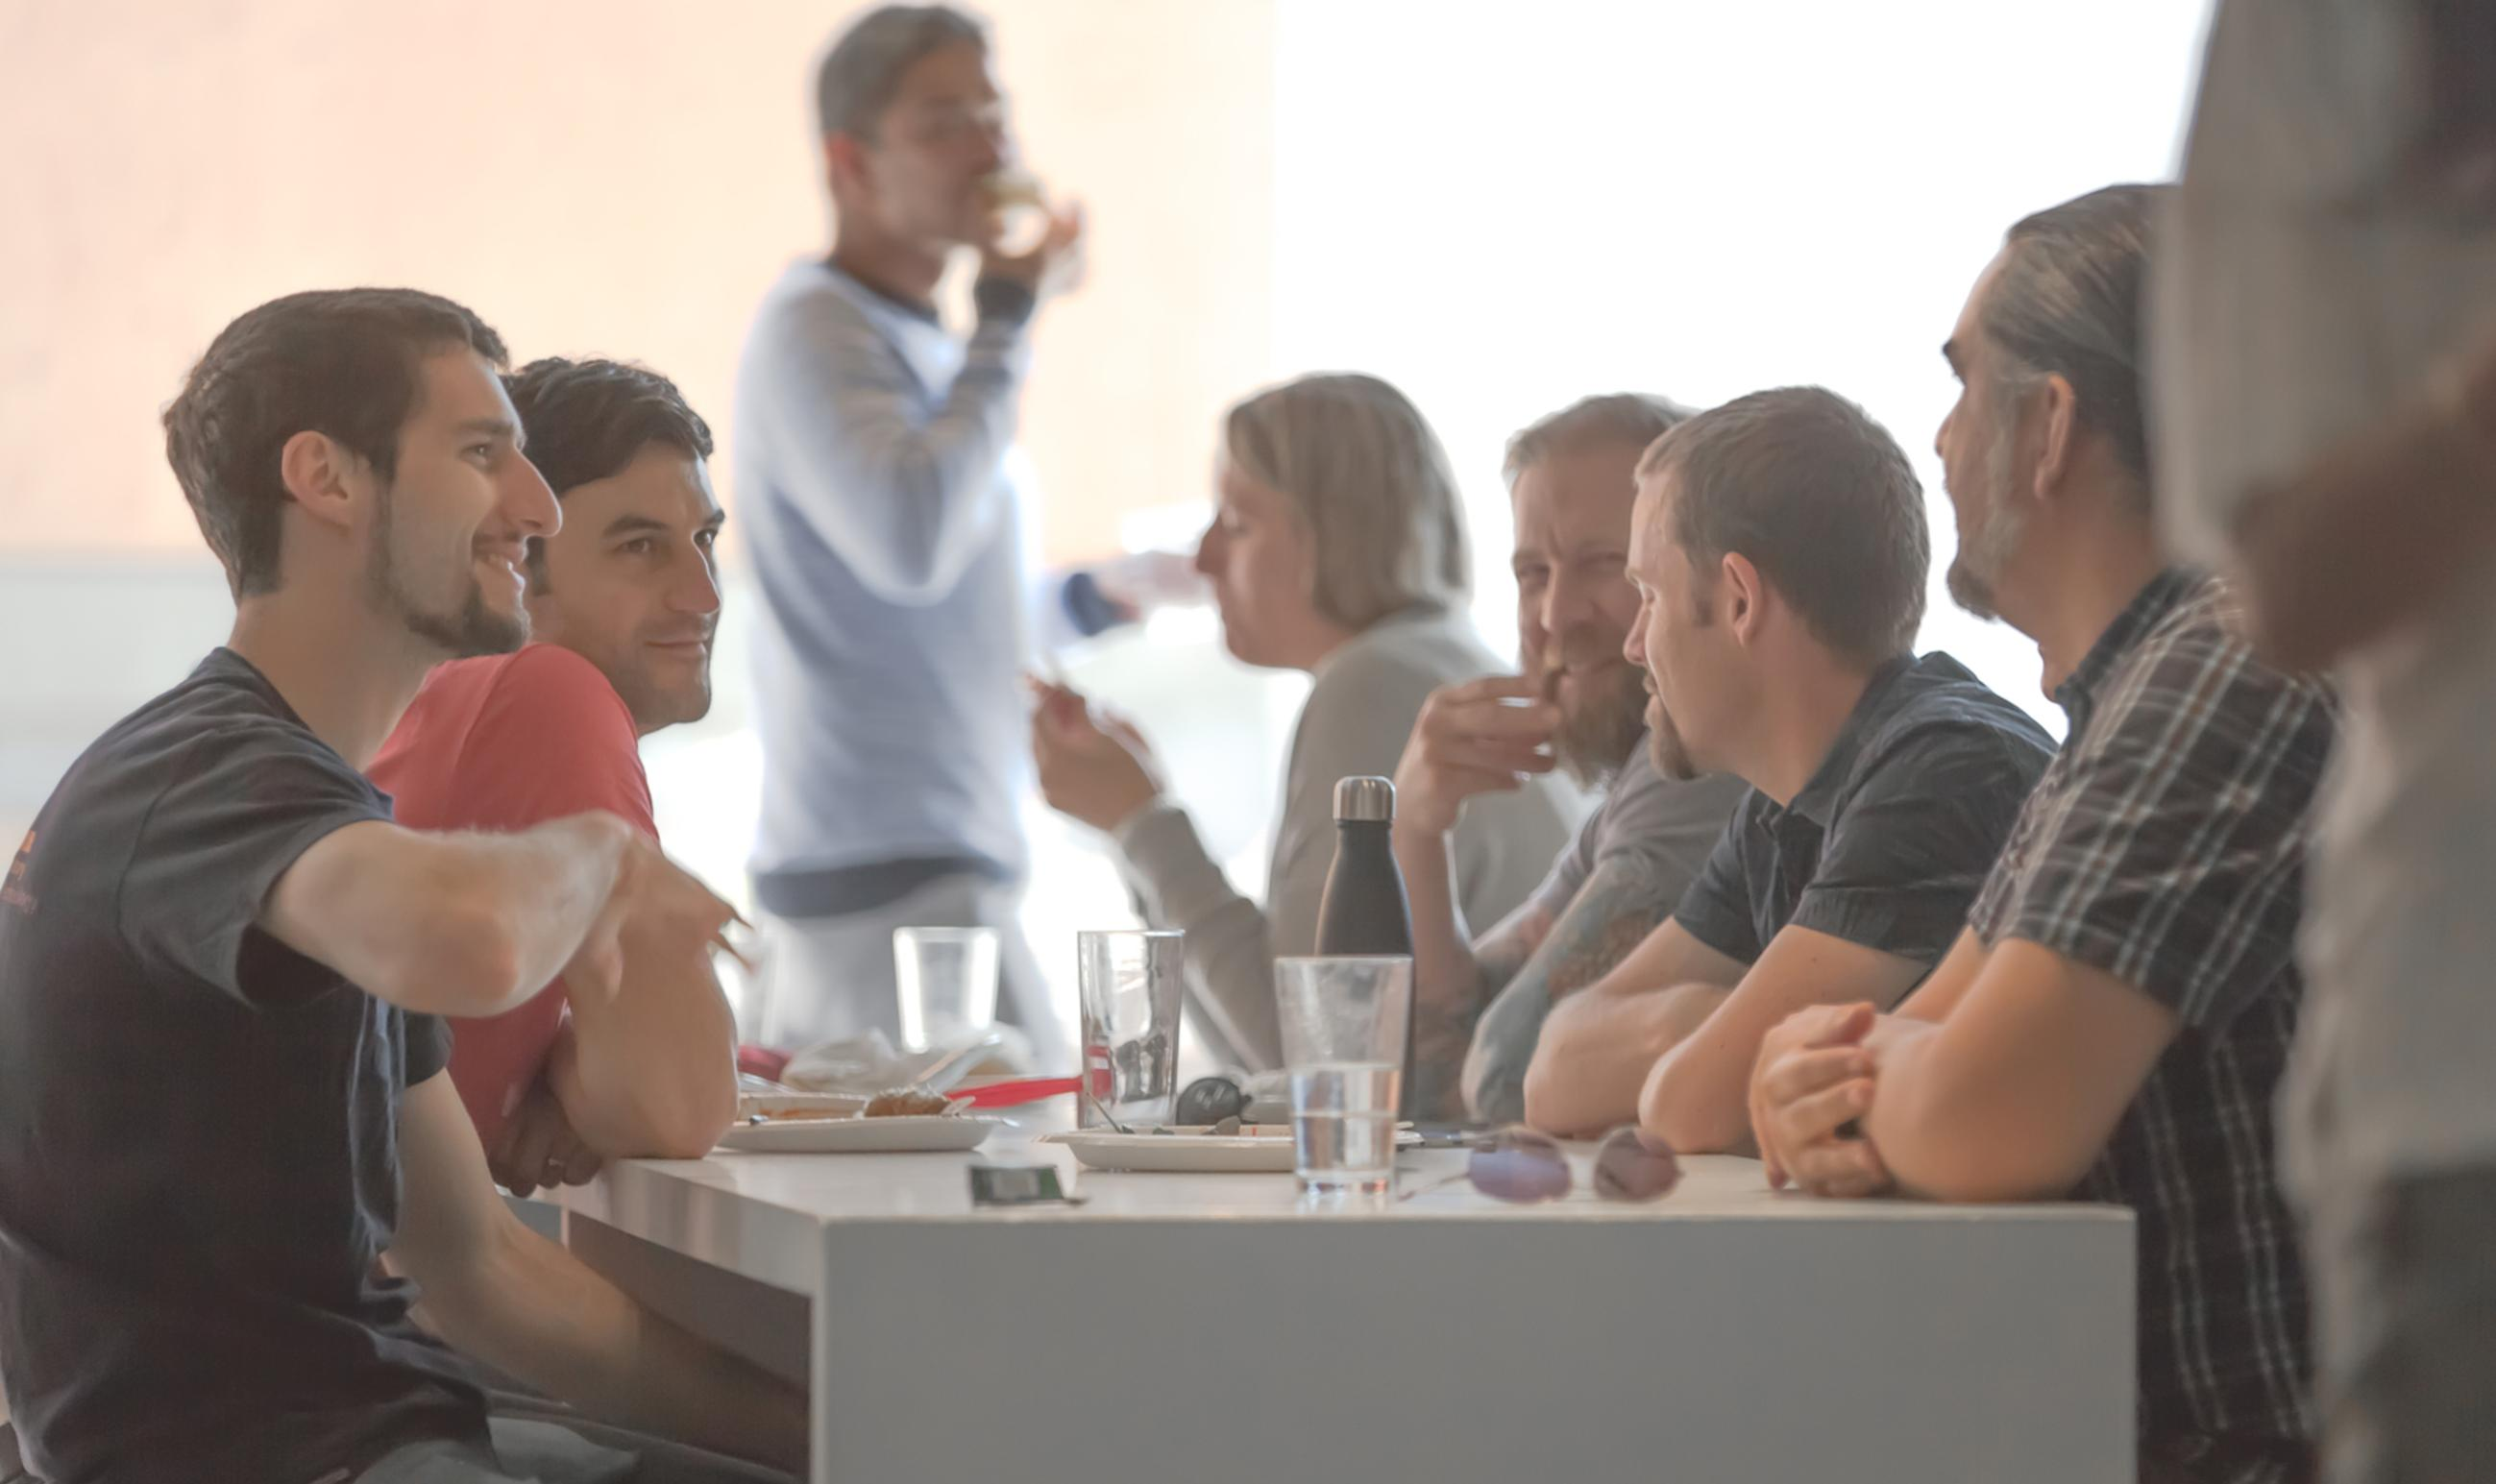 group of males having interaction with blurry office barbecue background